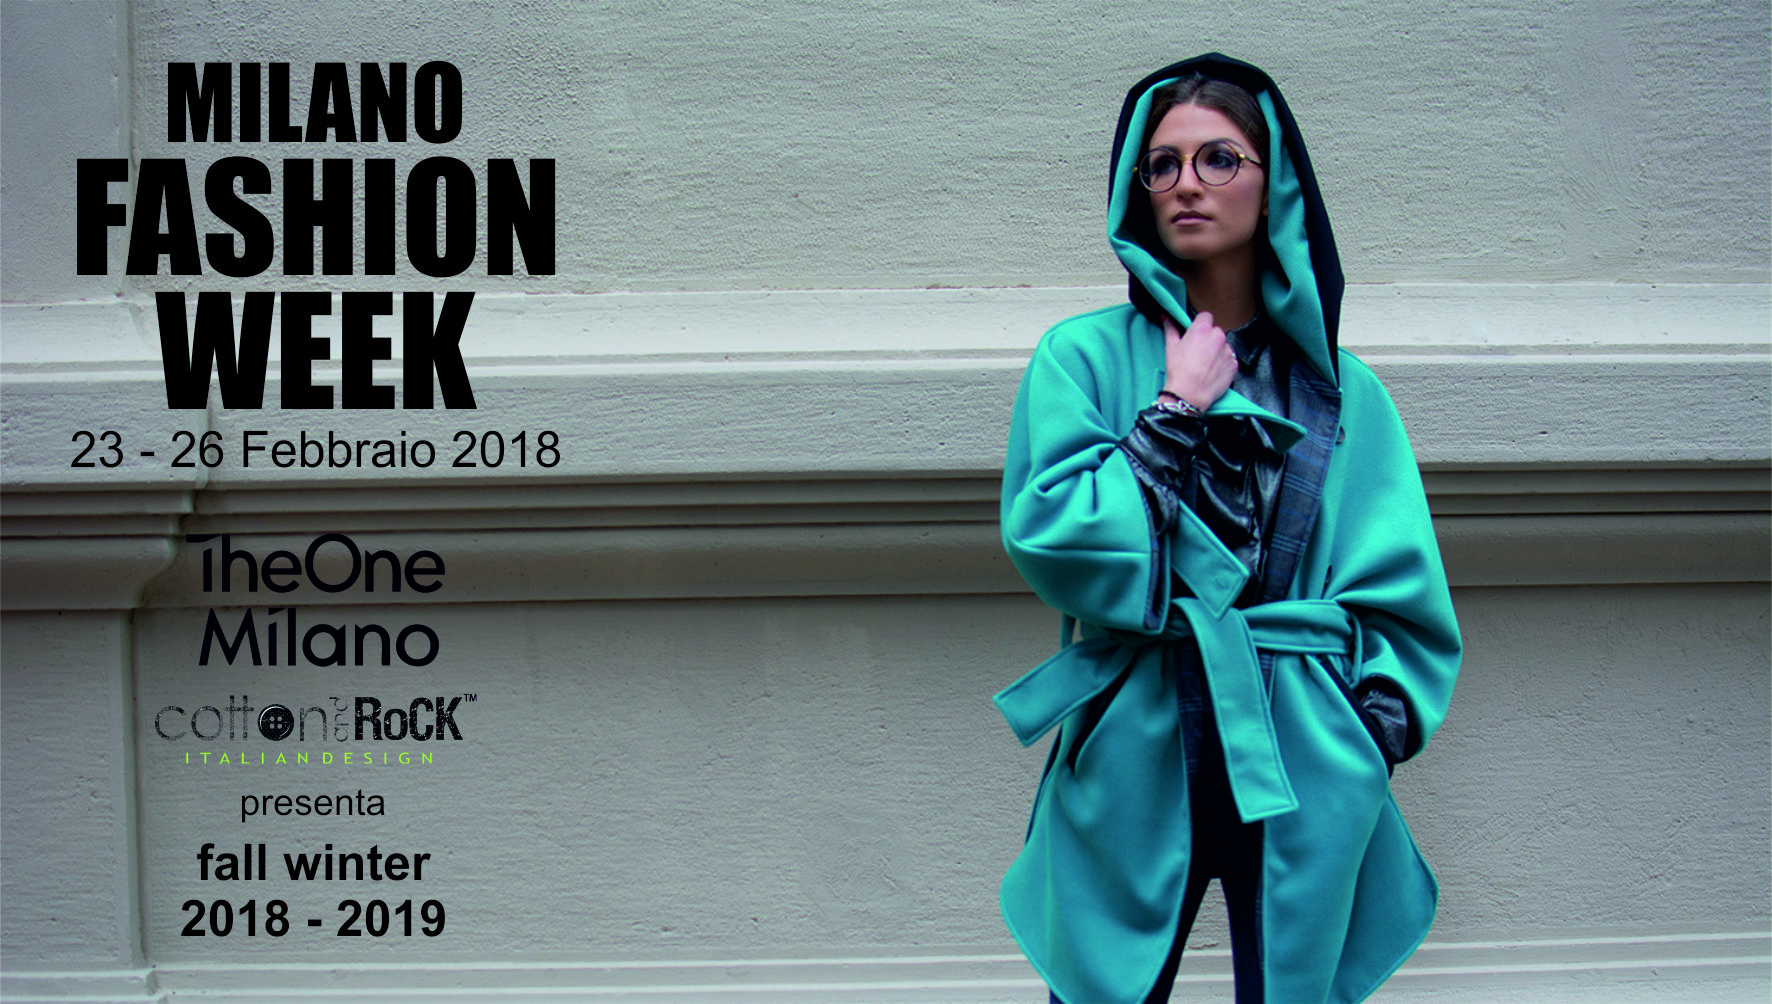 MILANO FASHION WEEK- CottonandRock in Original Prêt-à-porter al THE ONE